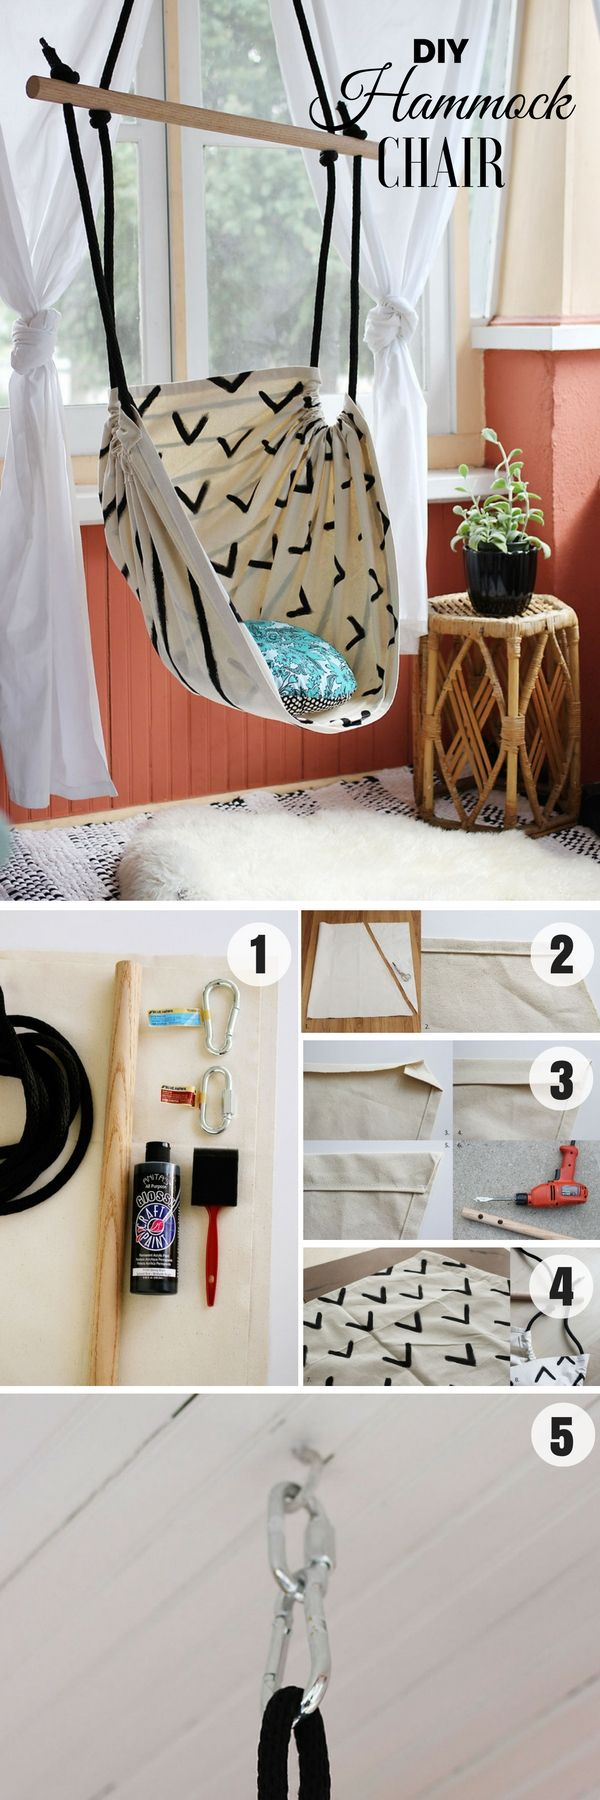 Interior Diy Bedroom Ideas best 25 diy projects for bedroom ideas on pinterest teen decor room organization and dorm ideas